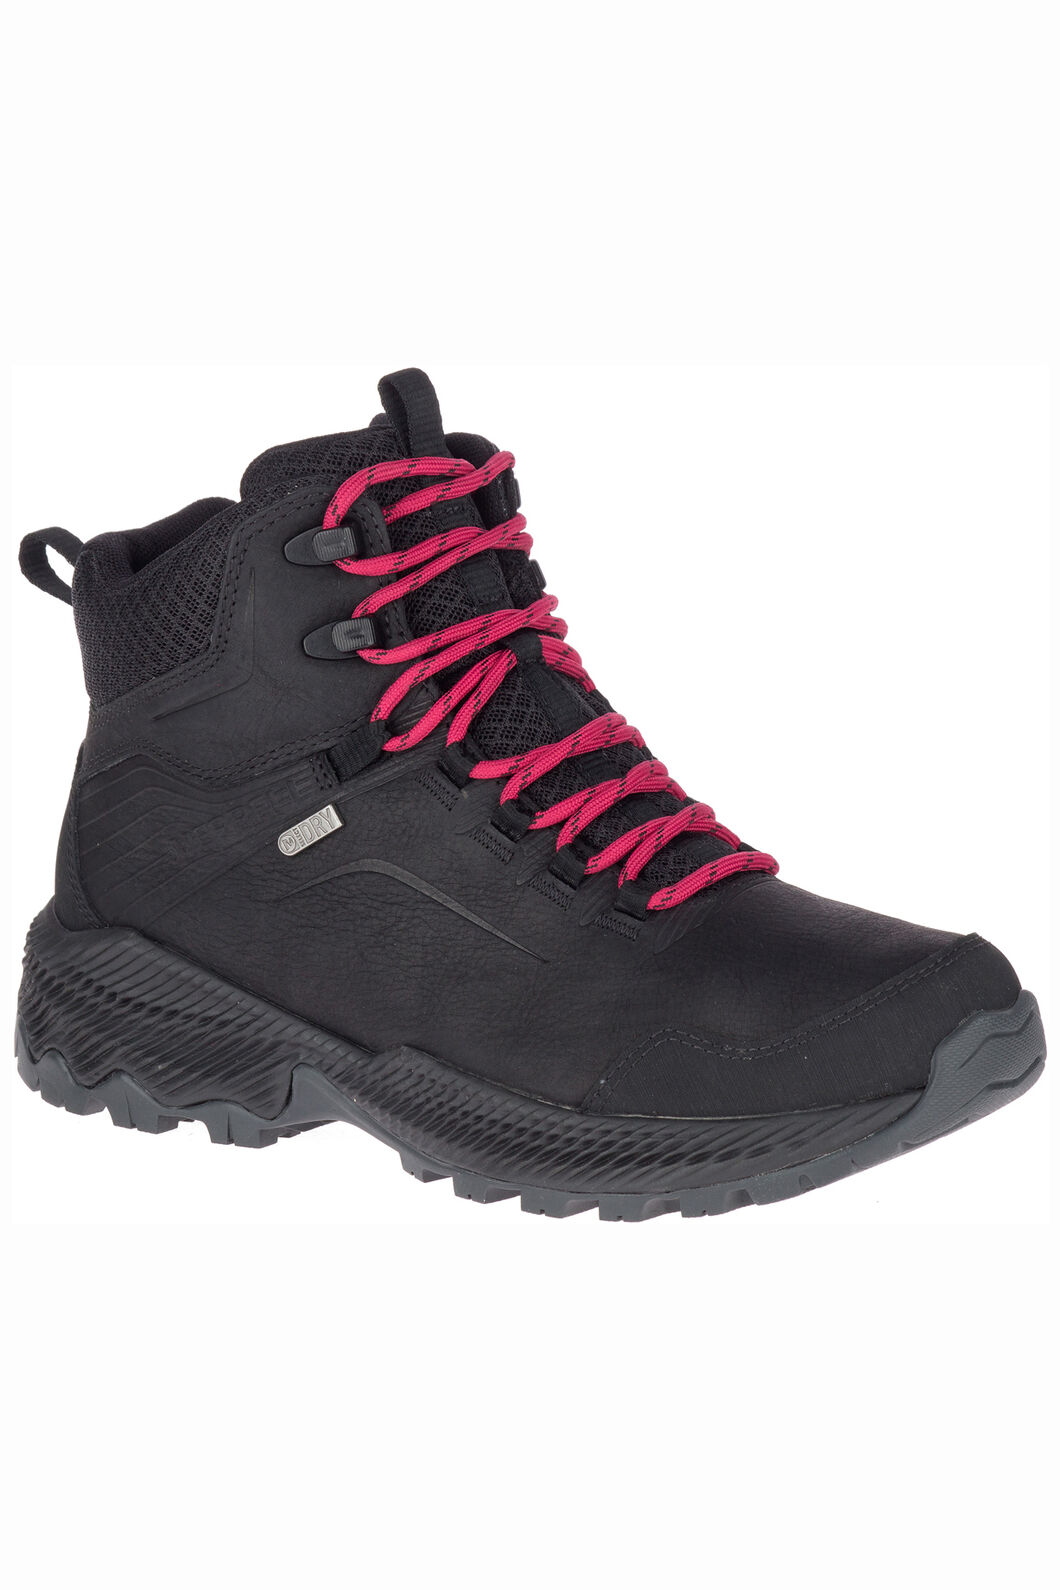 4a163f39 Merrell Women's Forestbound Mid WP Hiking Boots | Macpac